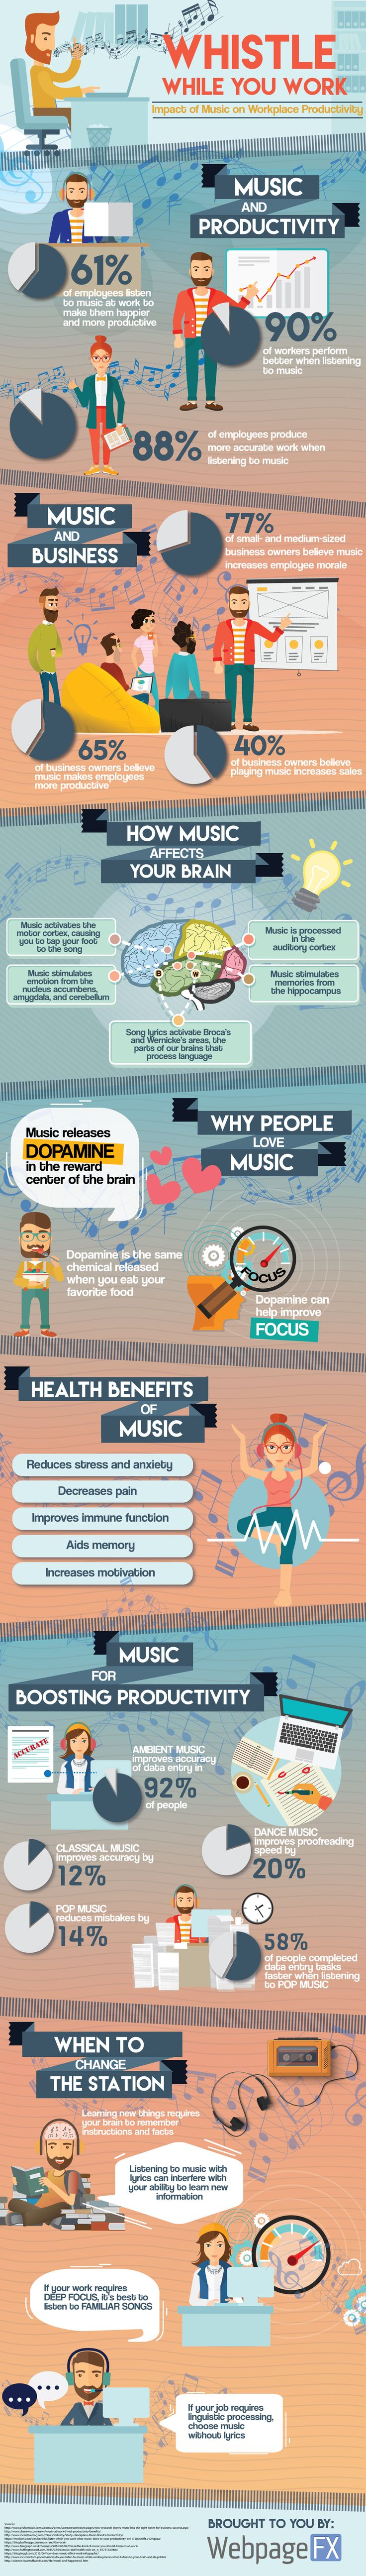 Does listening to music help or hurt your productivity? Check out this infographic to learn what kinds of music you should listen to at work.